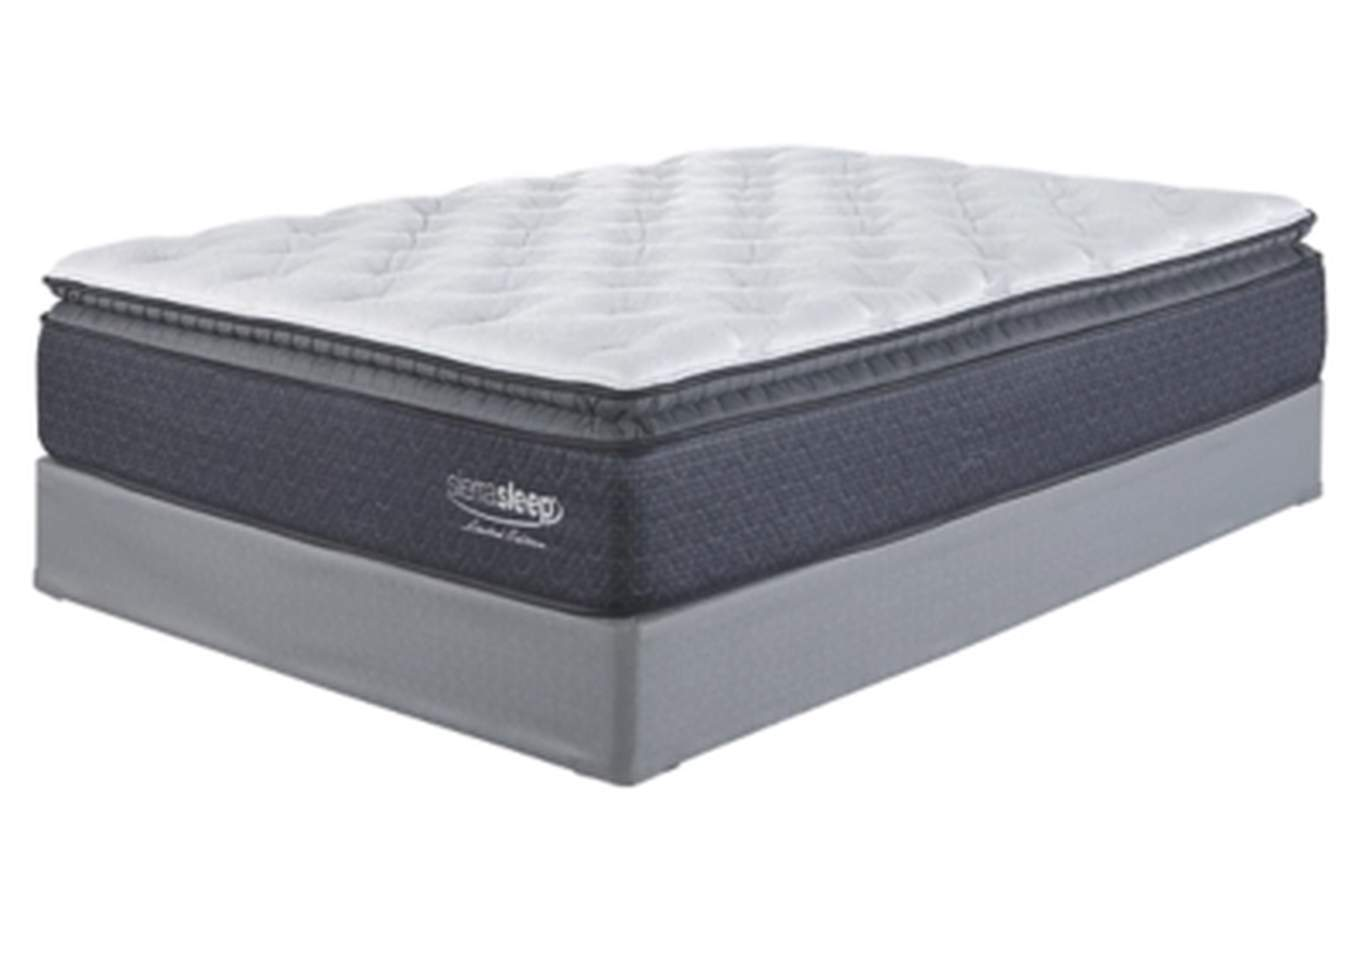 Limited Edition Pillowtop White Twin Mattress w/Foundation,Sierra Sleep